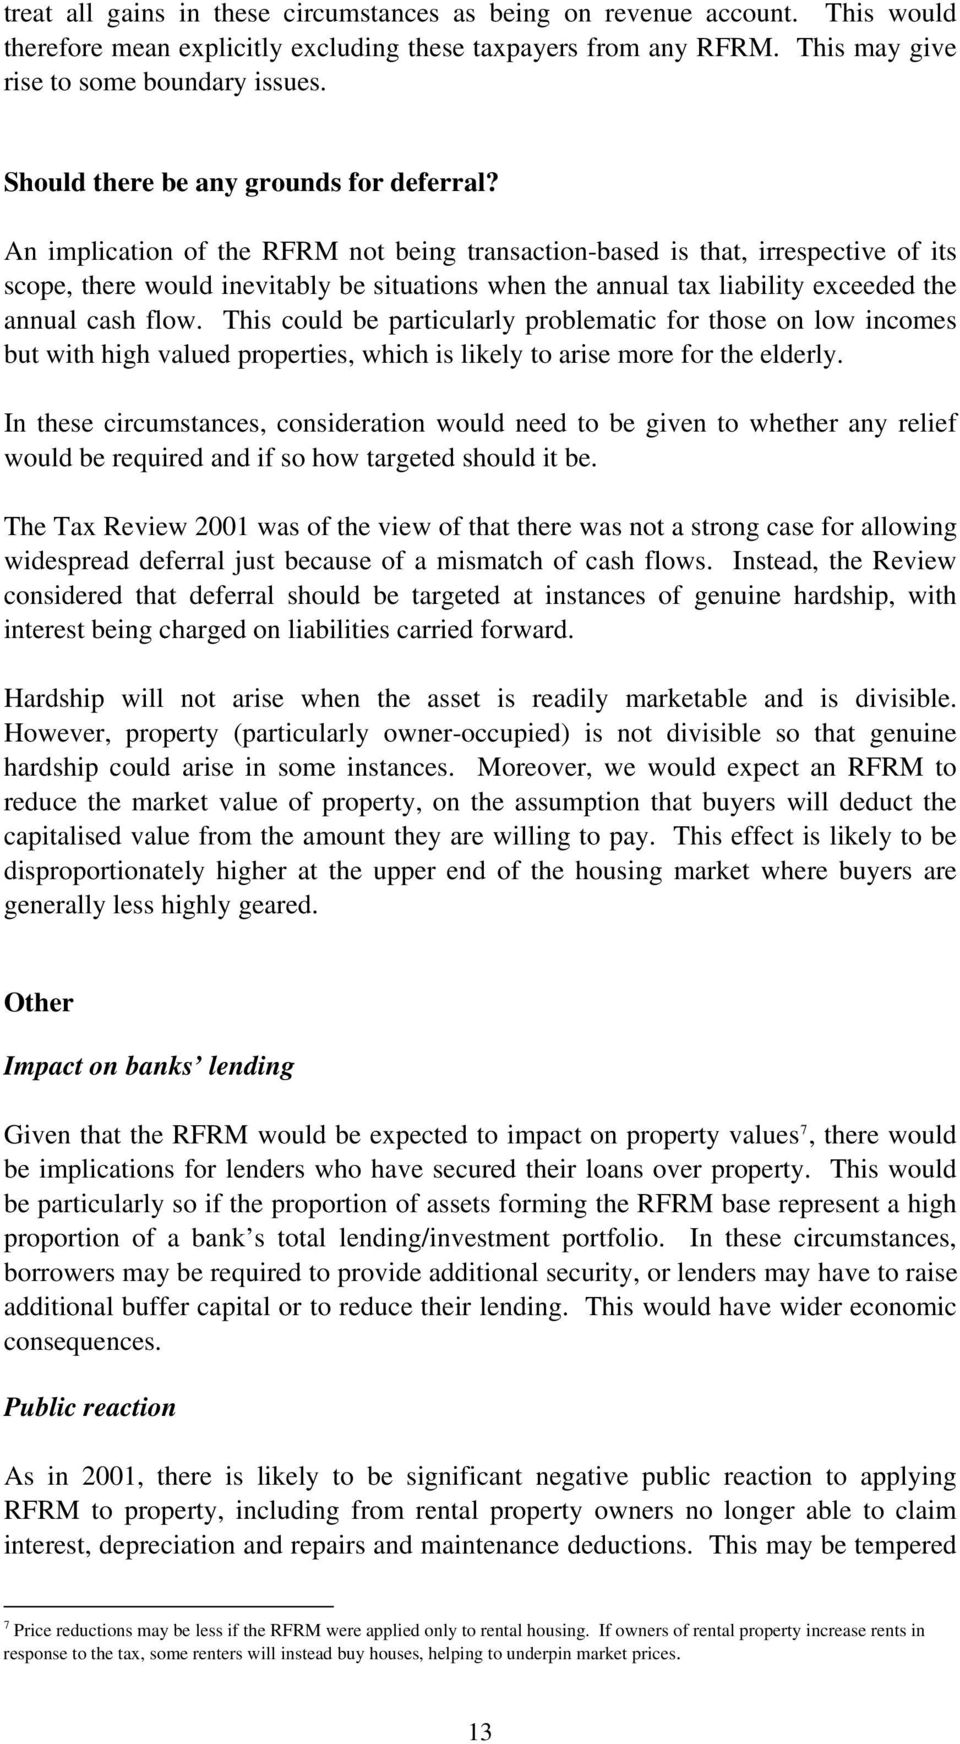 An implication of the RFRM not being transaction-based is that, irrespective of its scope, there would inevitably be situations when the annual tax liability exceeded the annual cash flow.